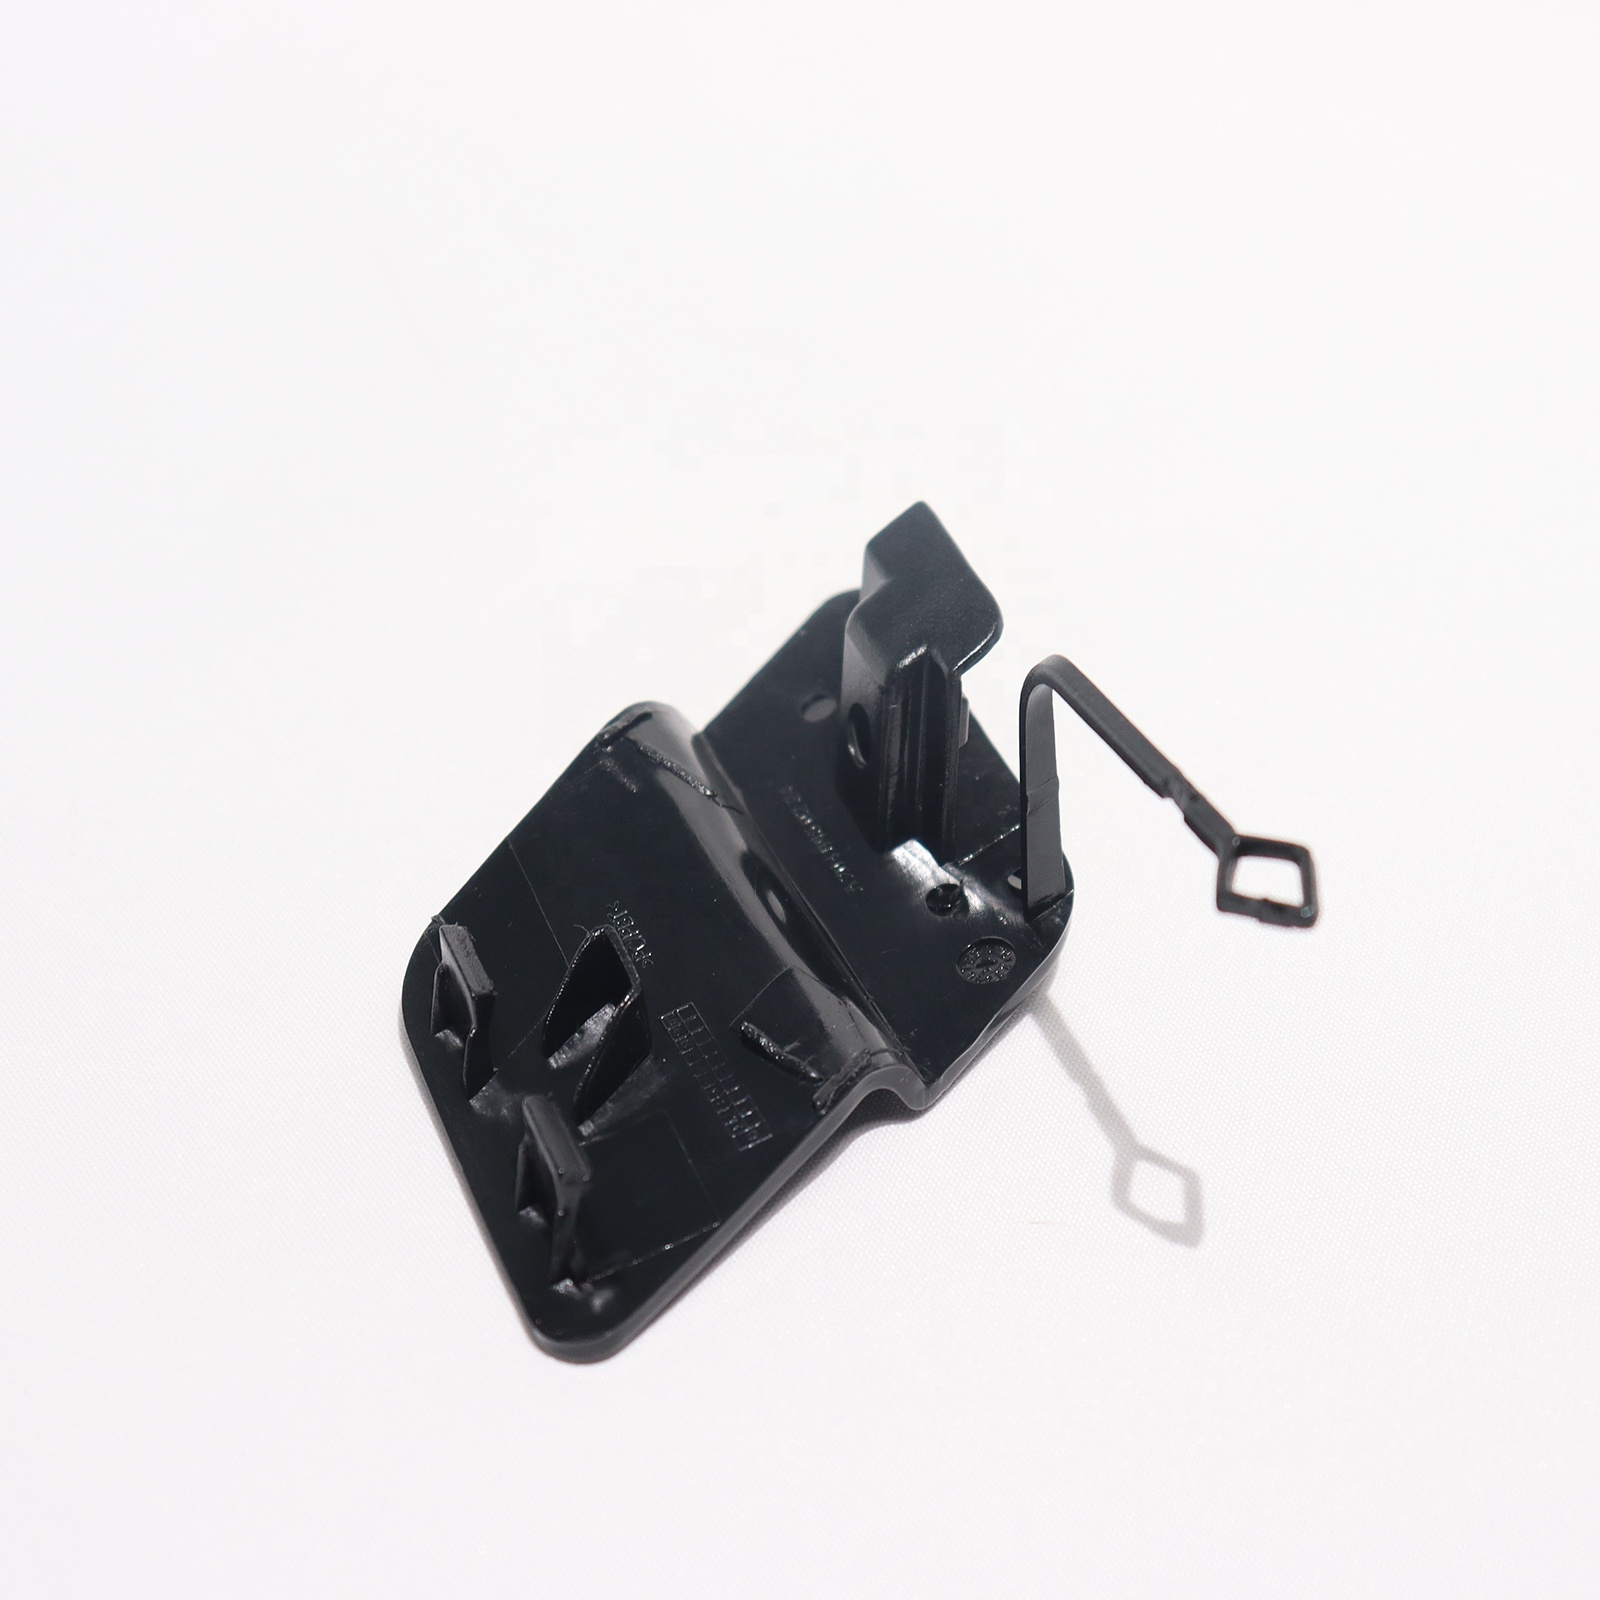 Auto Front Bumper Parts Tow Hook Towing Eye Cover A2048850224 For Merdeces Benz GLK X204